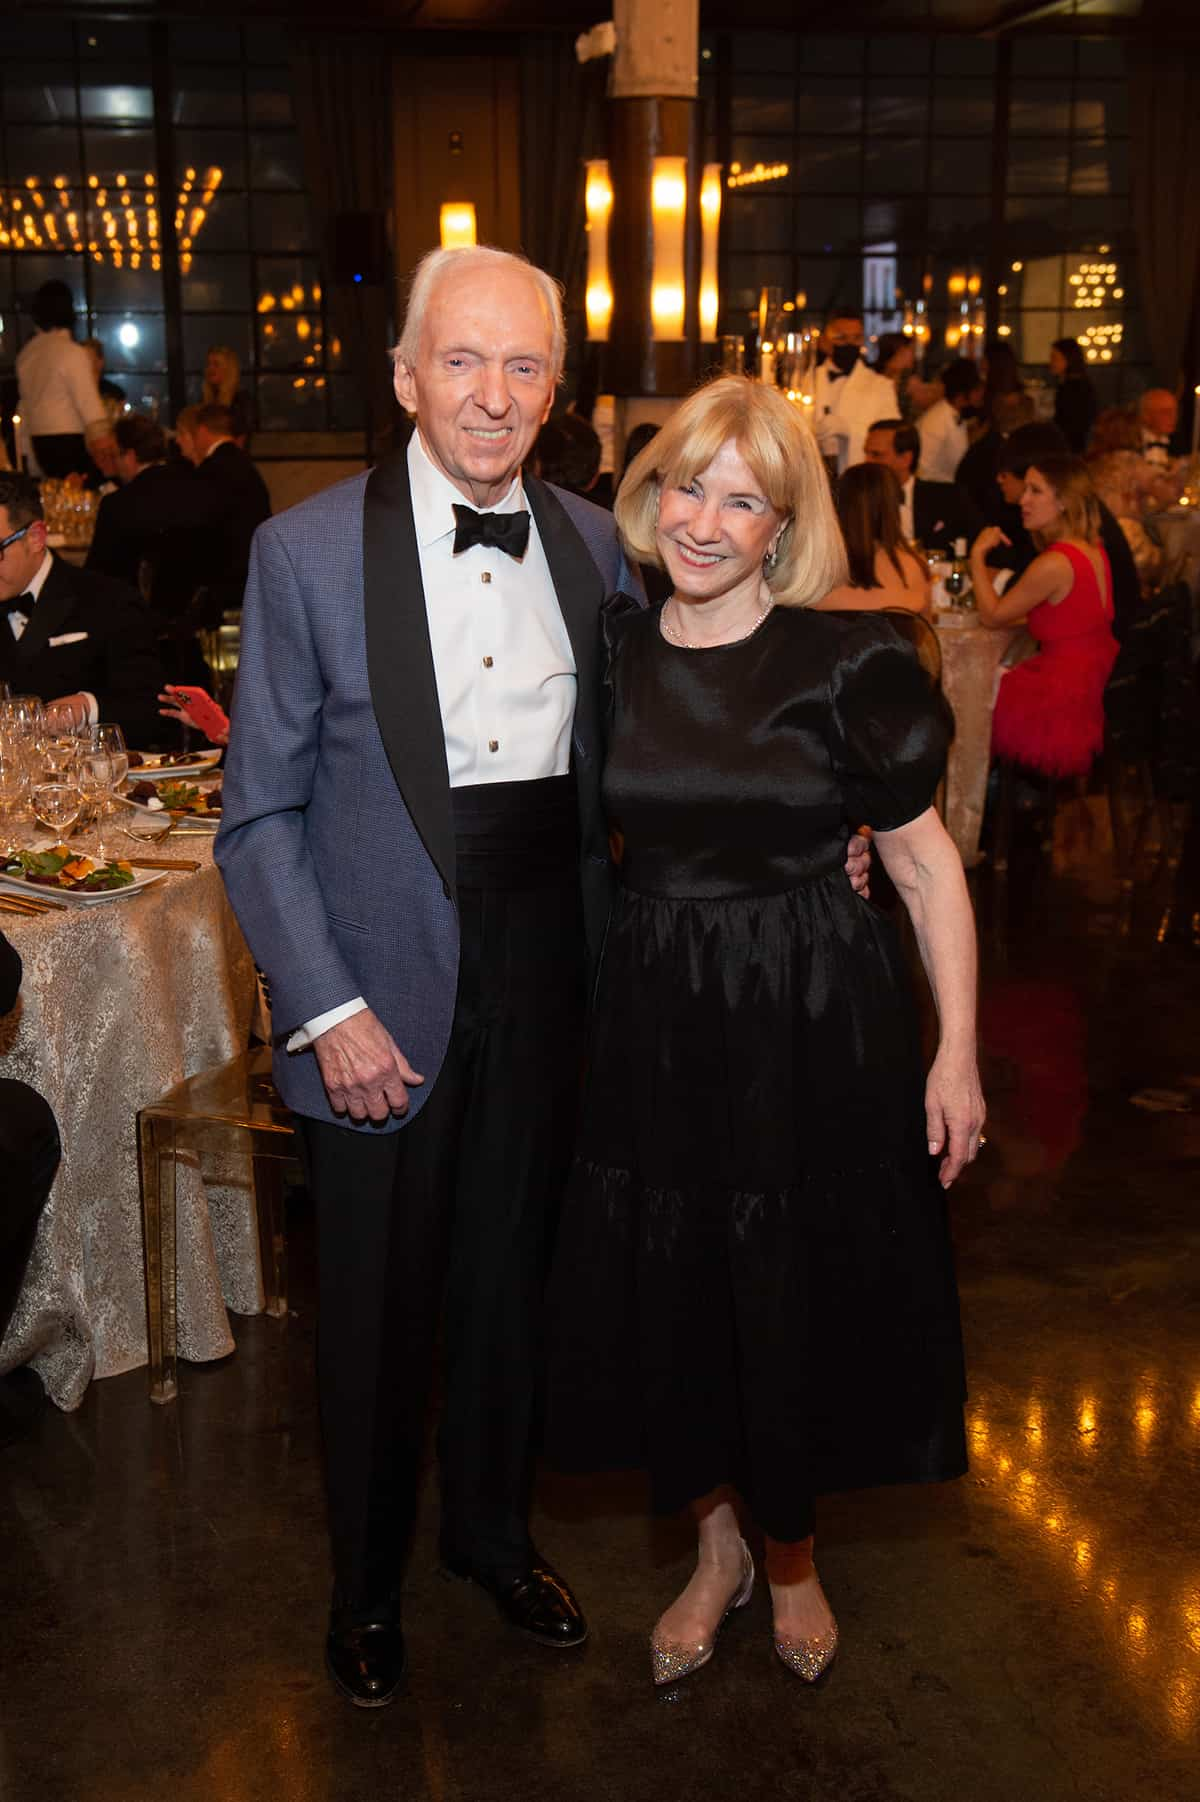 Ed and Susan Osterberg